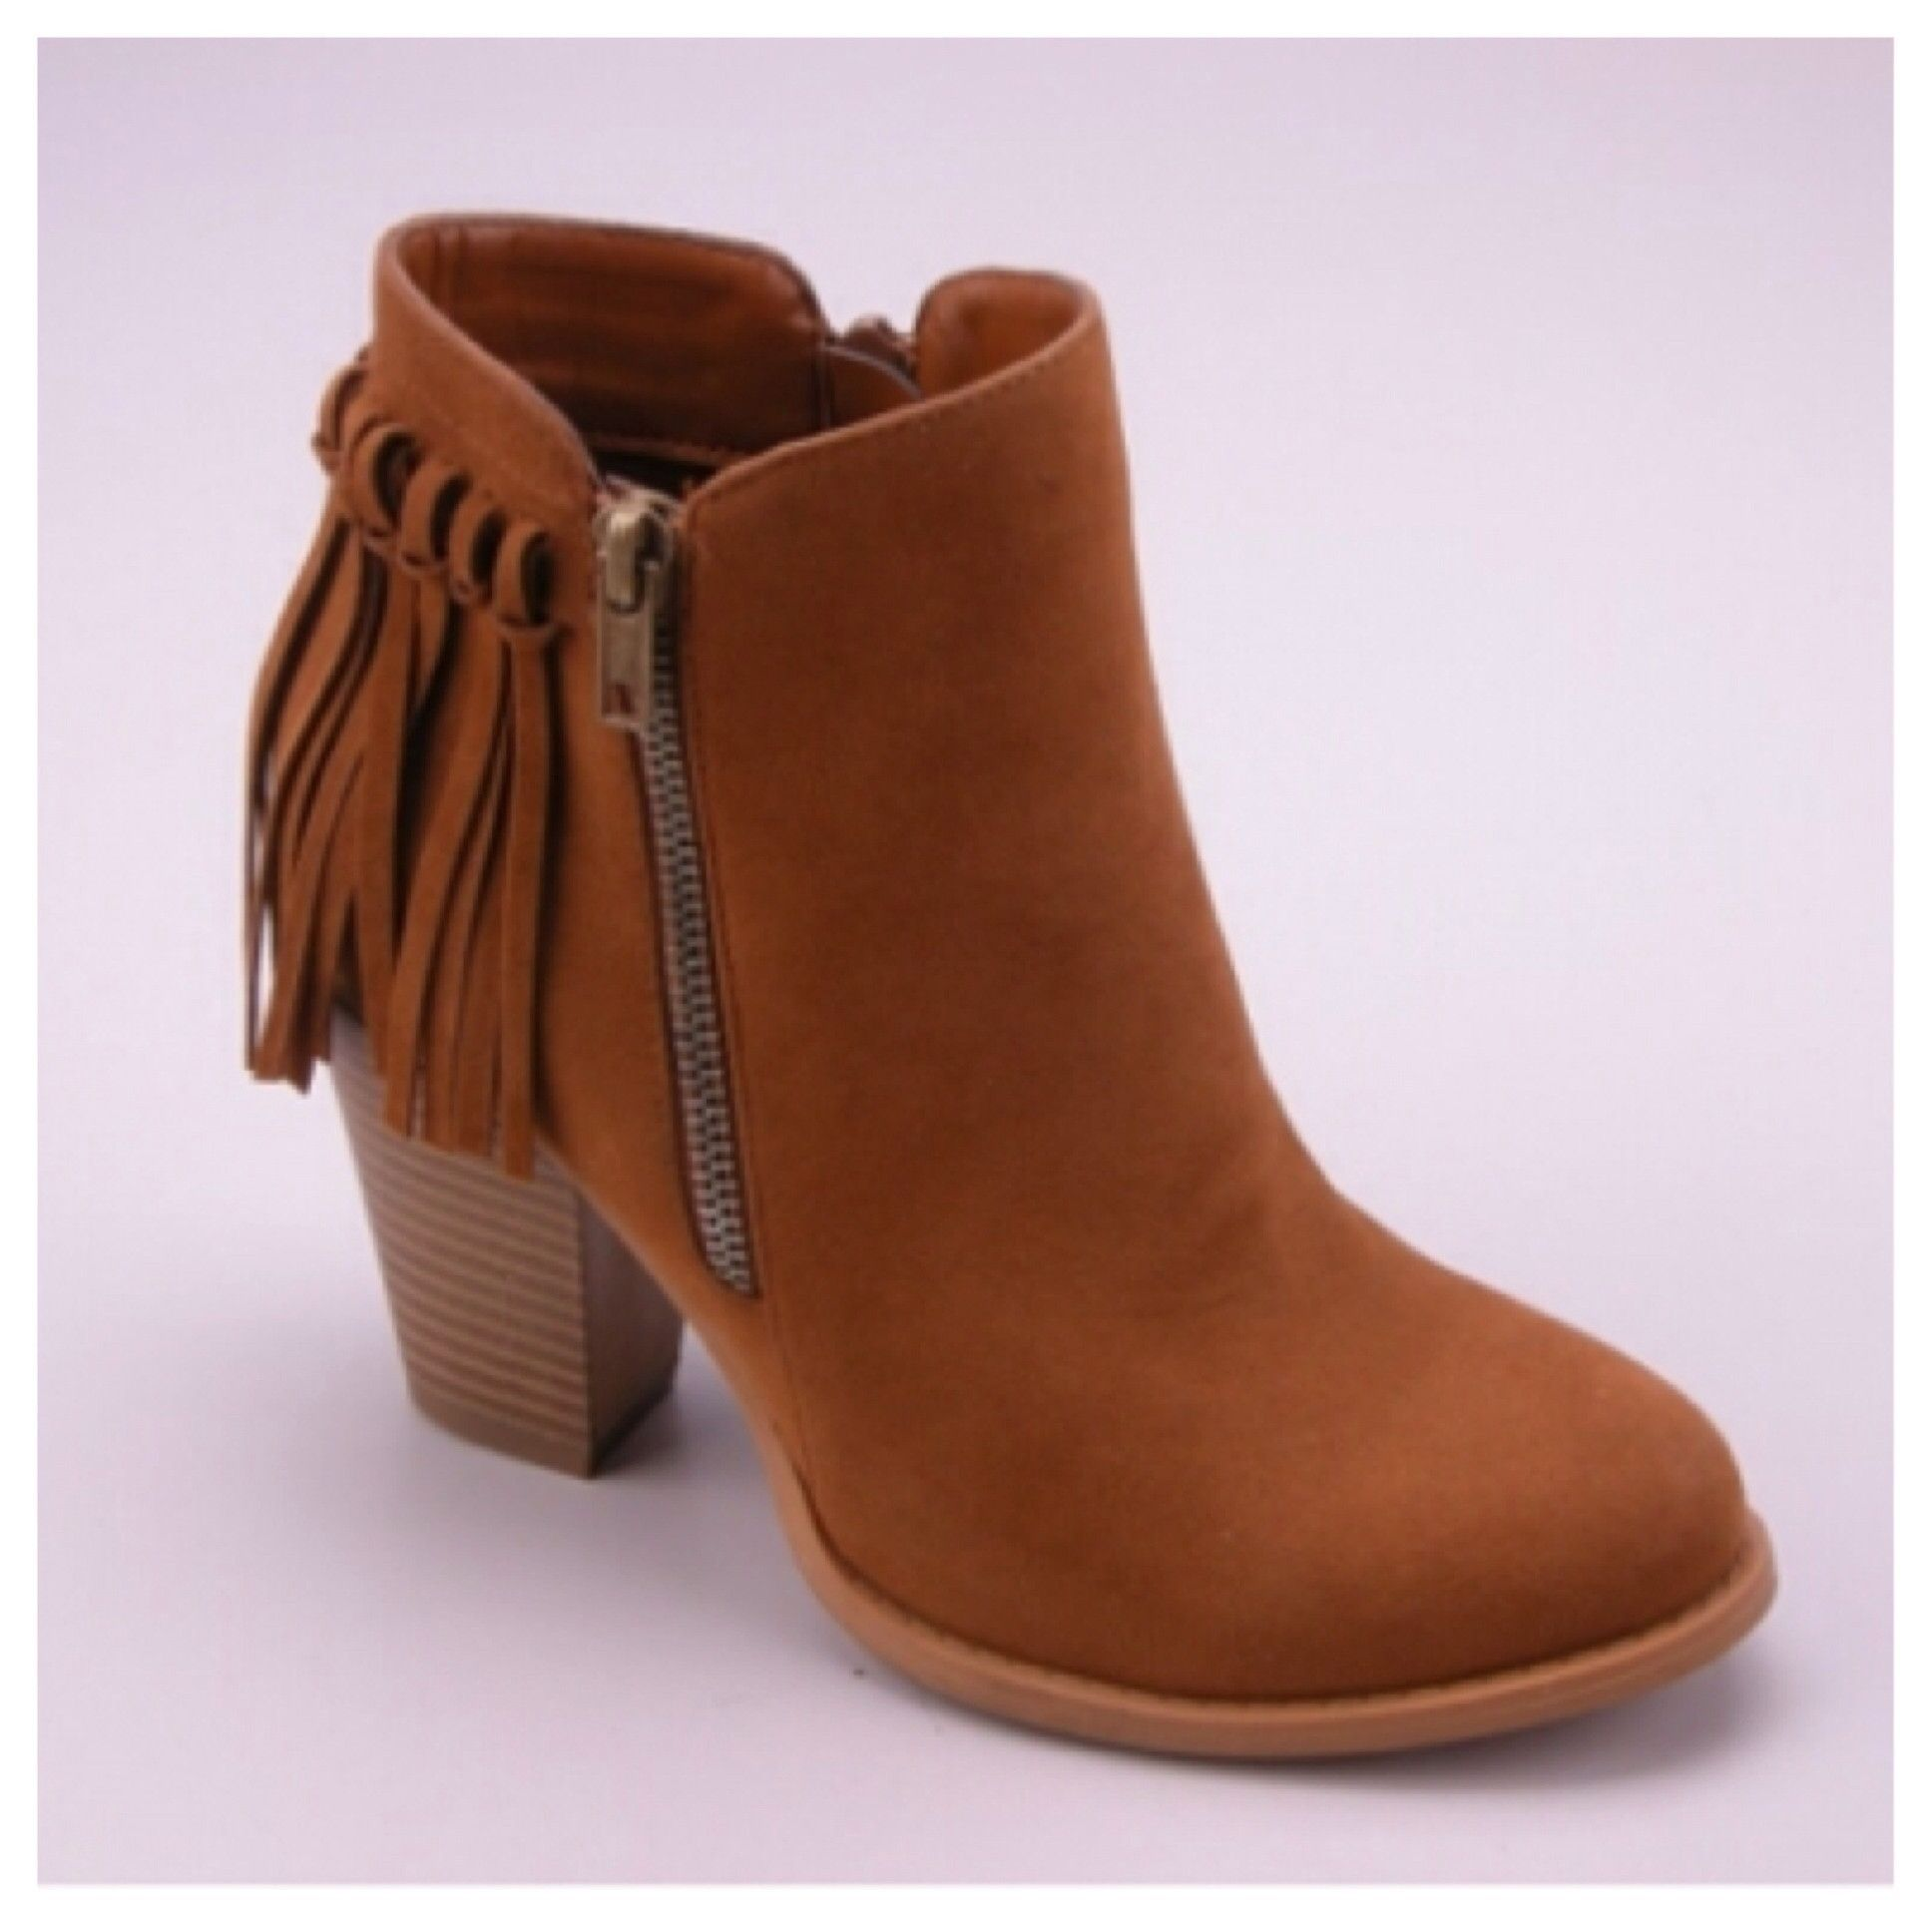 Tan Fall HaveFringe Heel Fashion With Bootie Must Boots Tl1cuFKJ3